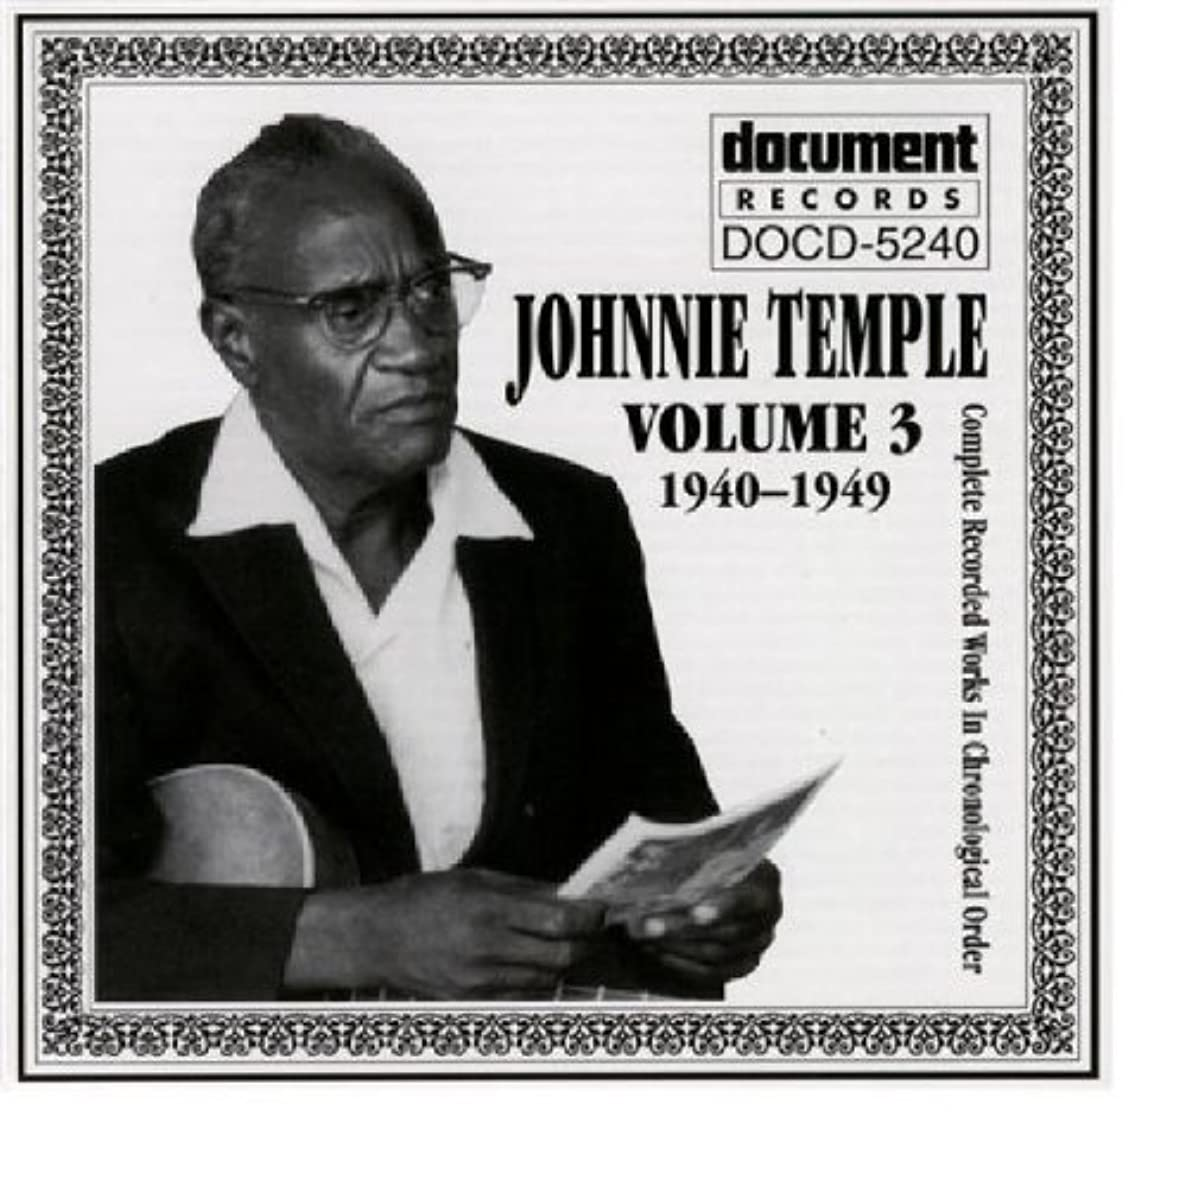 Johnnie Temple 1940- 1949 Vol. 3